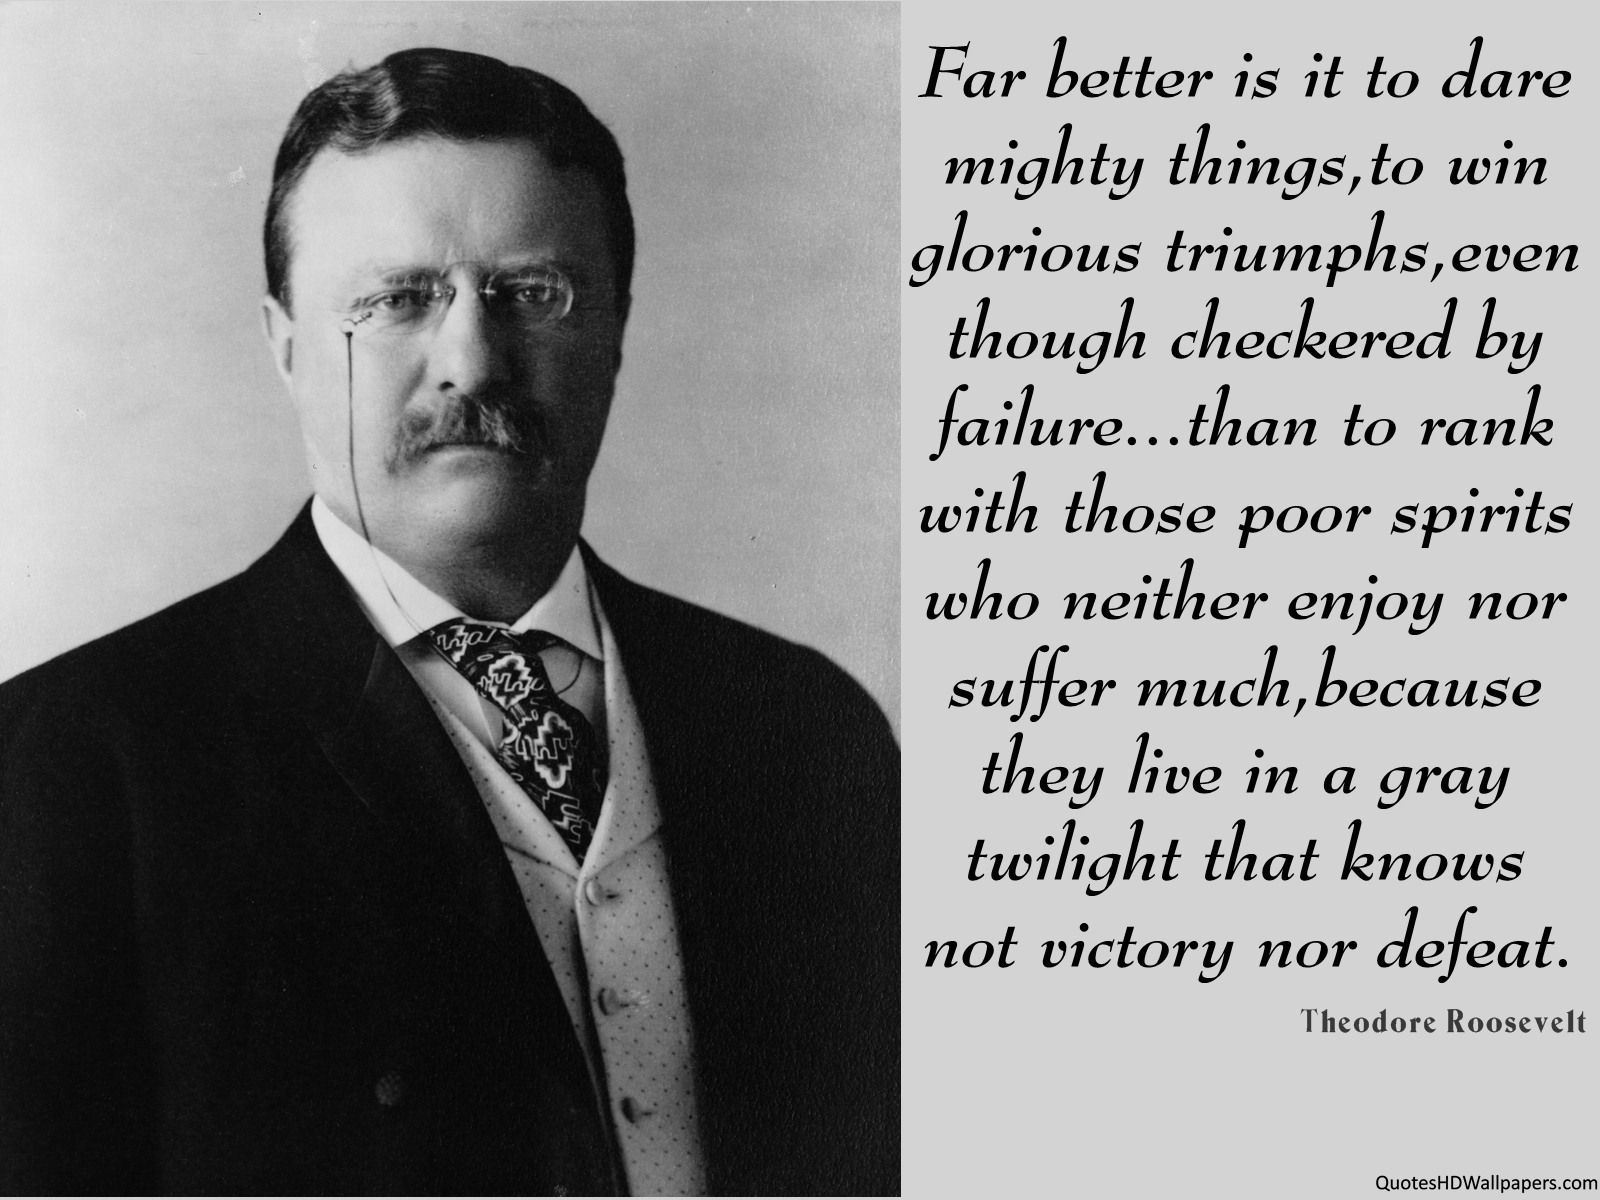 essay on theodore roosevelt - theodore roosevelt theodore roosevelt the 26th president of the united states, was born at 33 east 20th street in new york on october 27, 1858his father was a man of some wealth and importance in civic affairs.